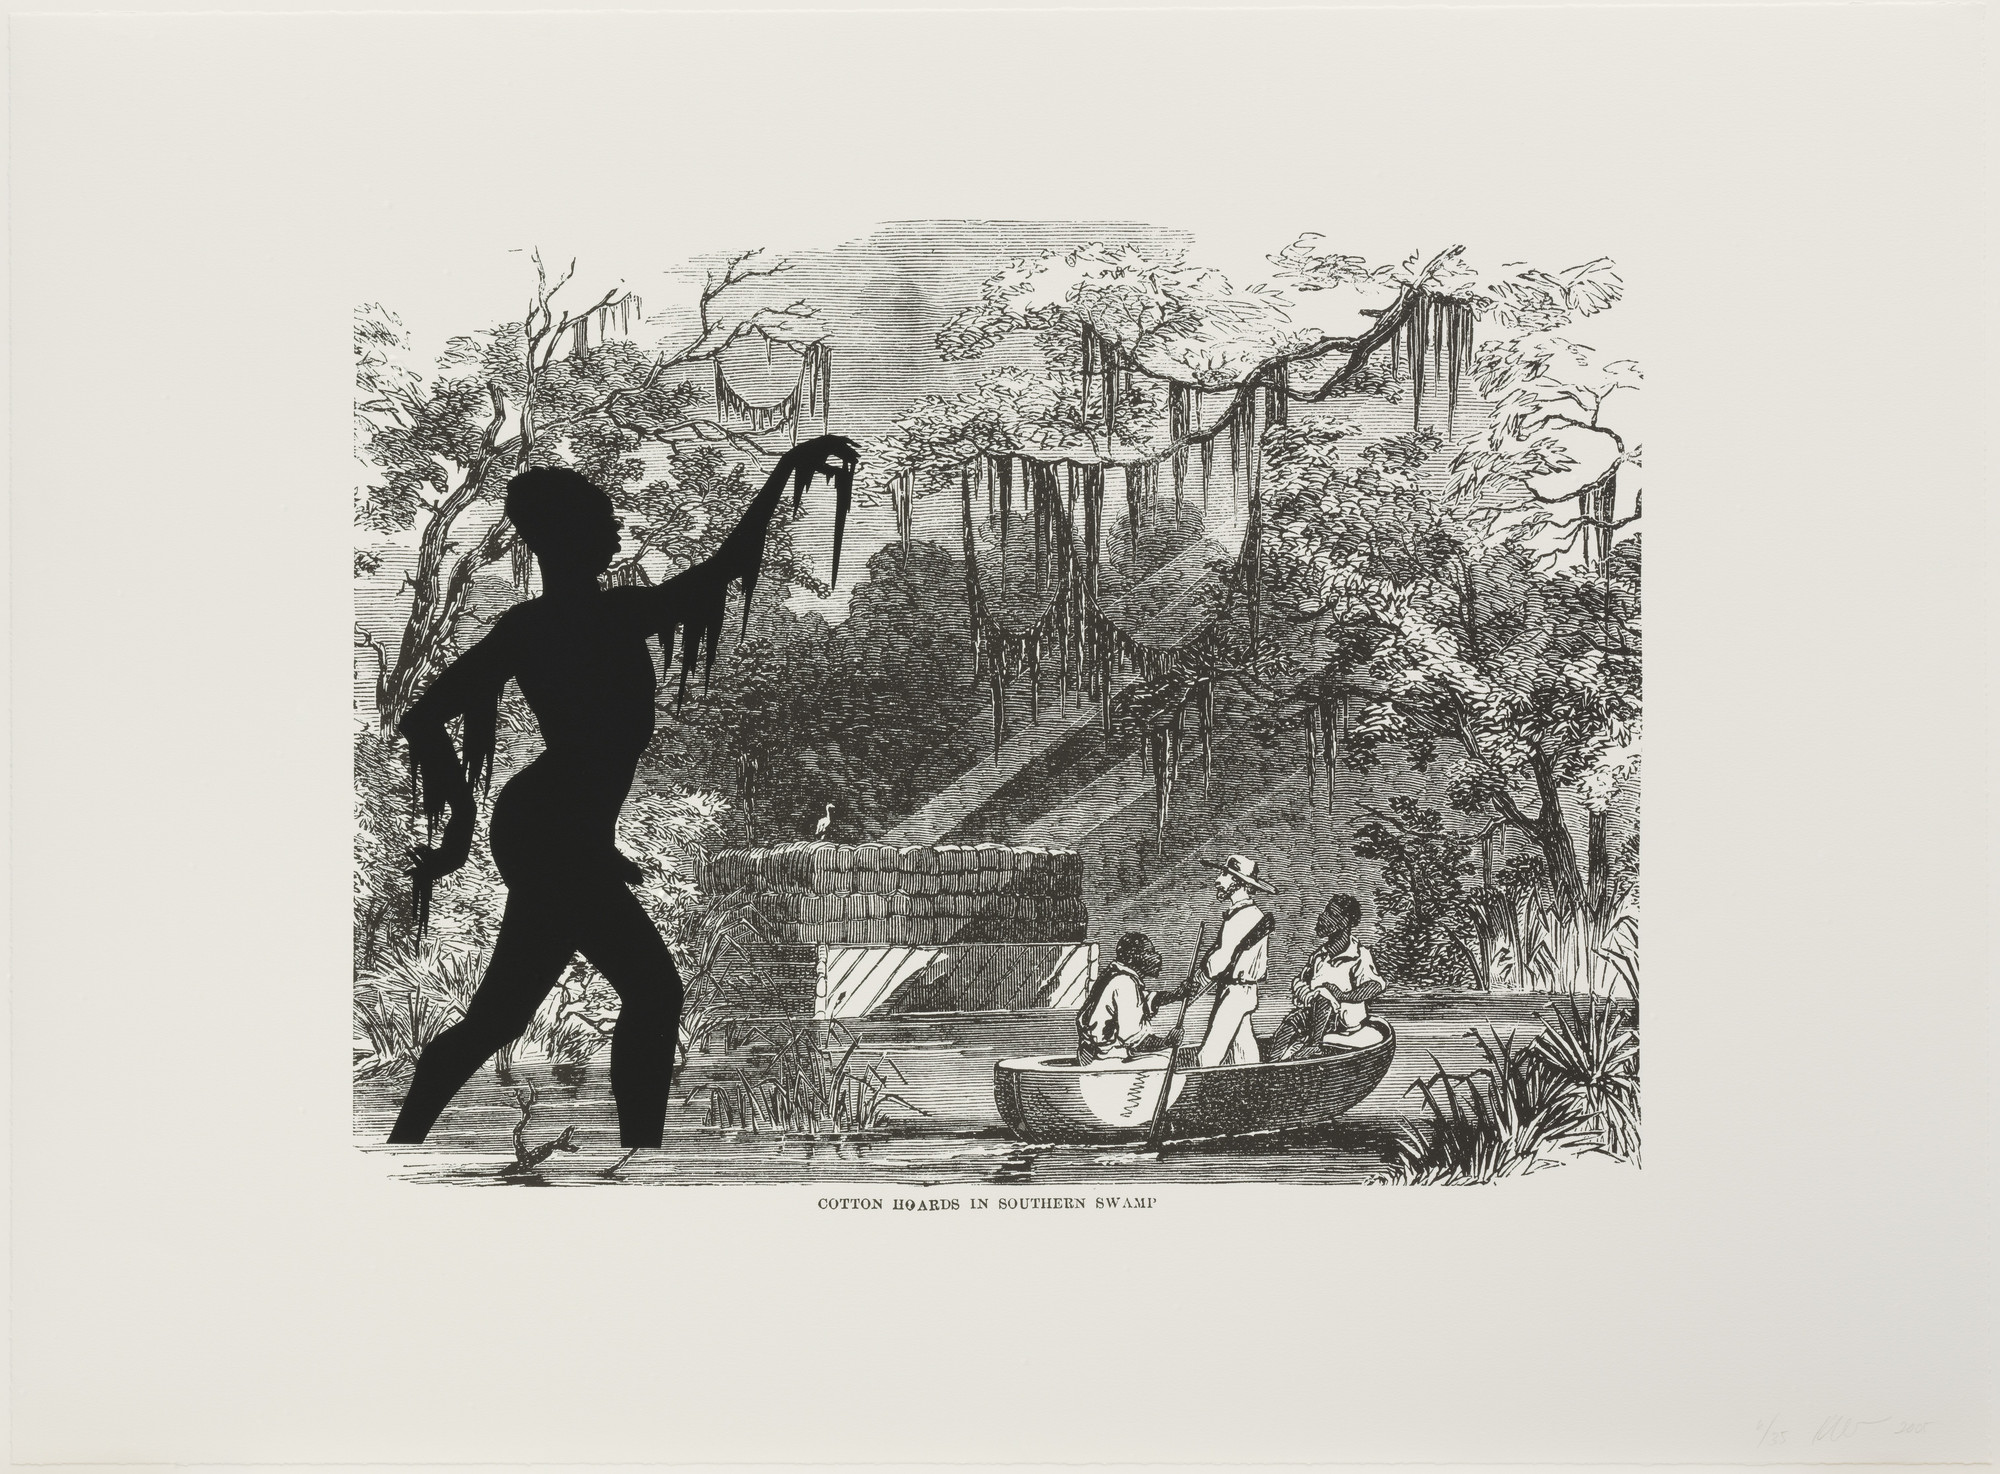 Kara Walker. Cotton Hoards in Southern Swamp from Harper's Pictorial History of the Civil War (Annotated). 2005